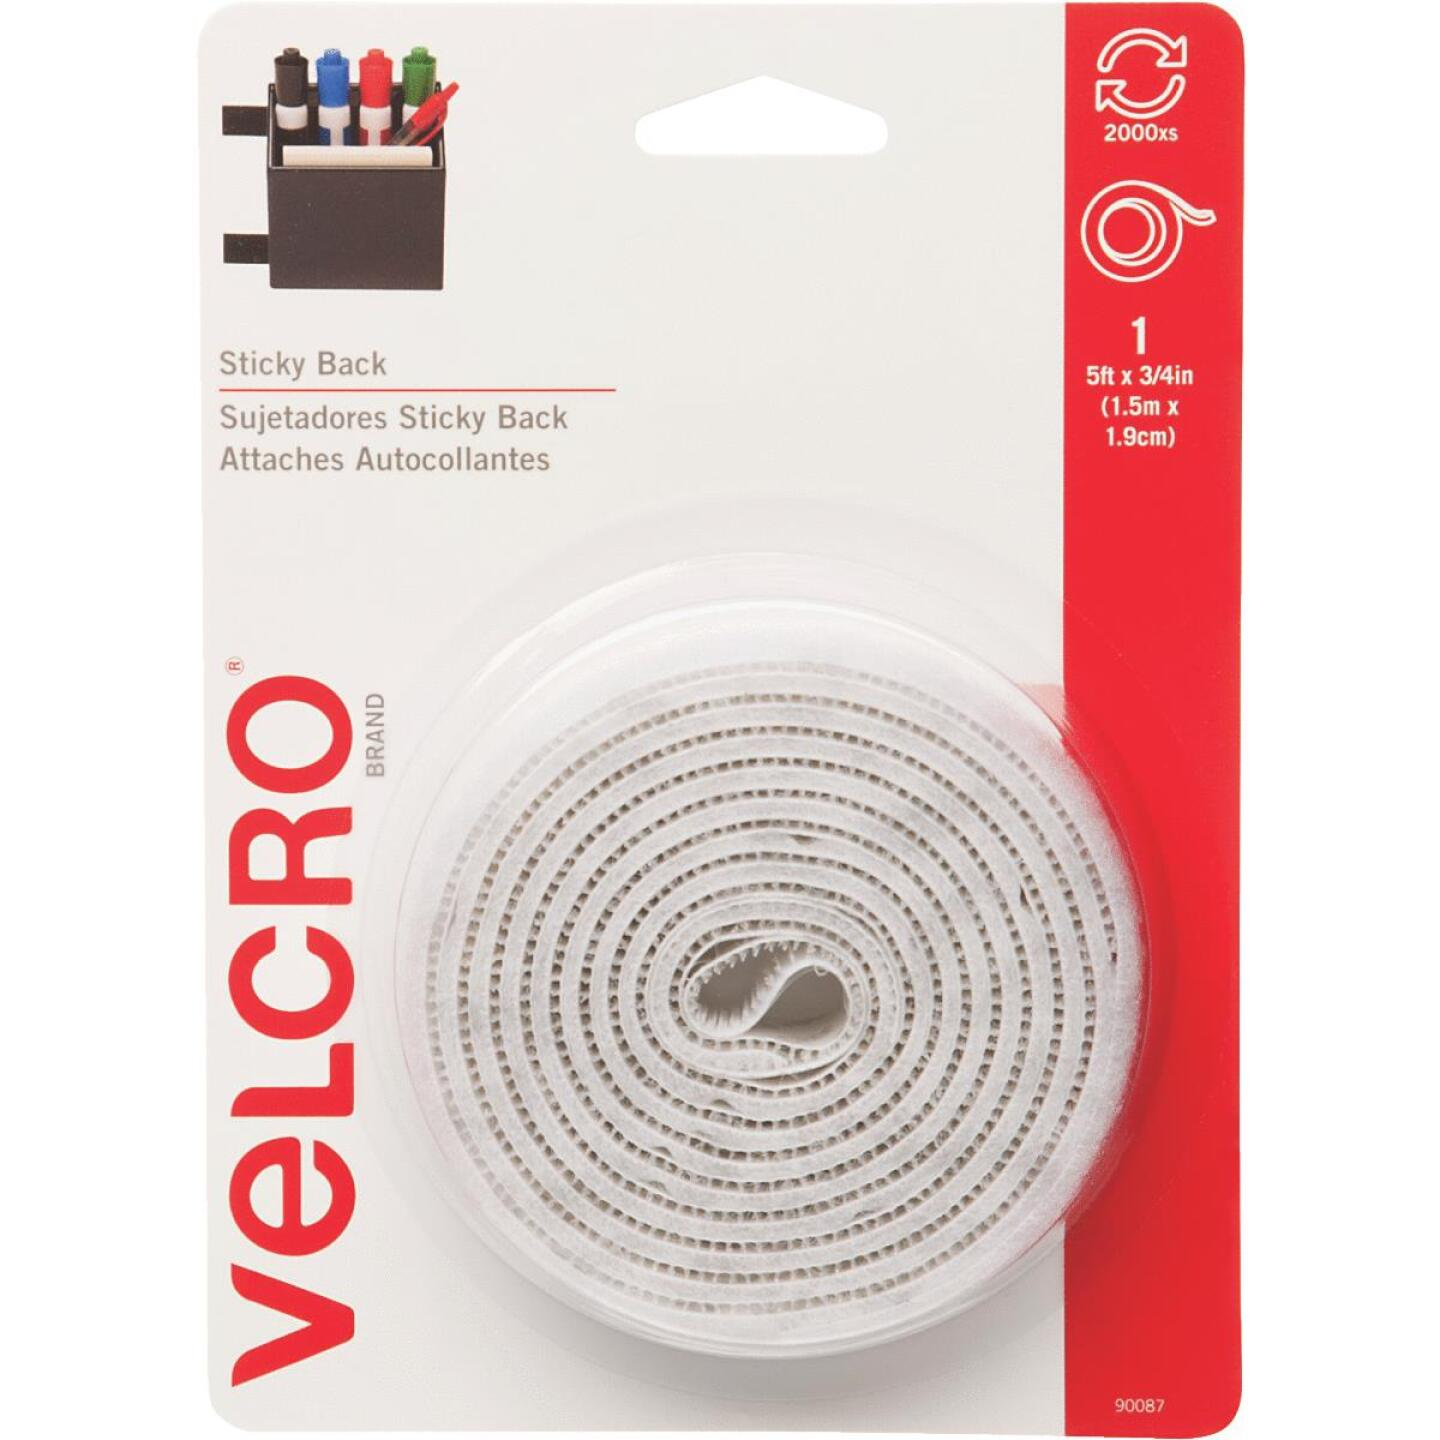 VELCRO Brand 3/4 In. x 5 Ft. White Sticky Back Reclosable Hook & Loop Roll Image 1